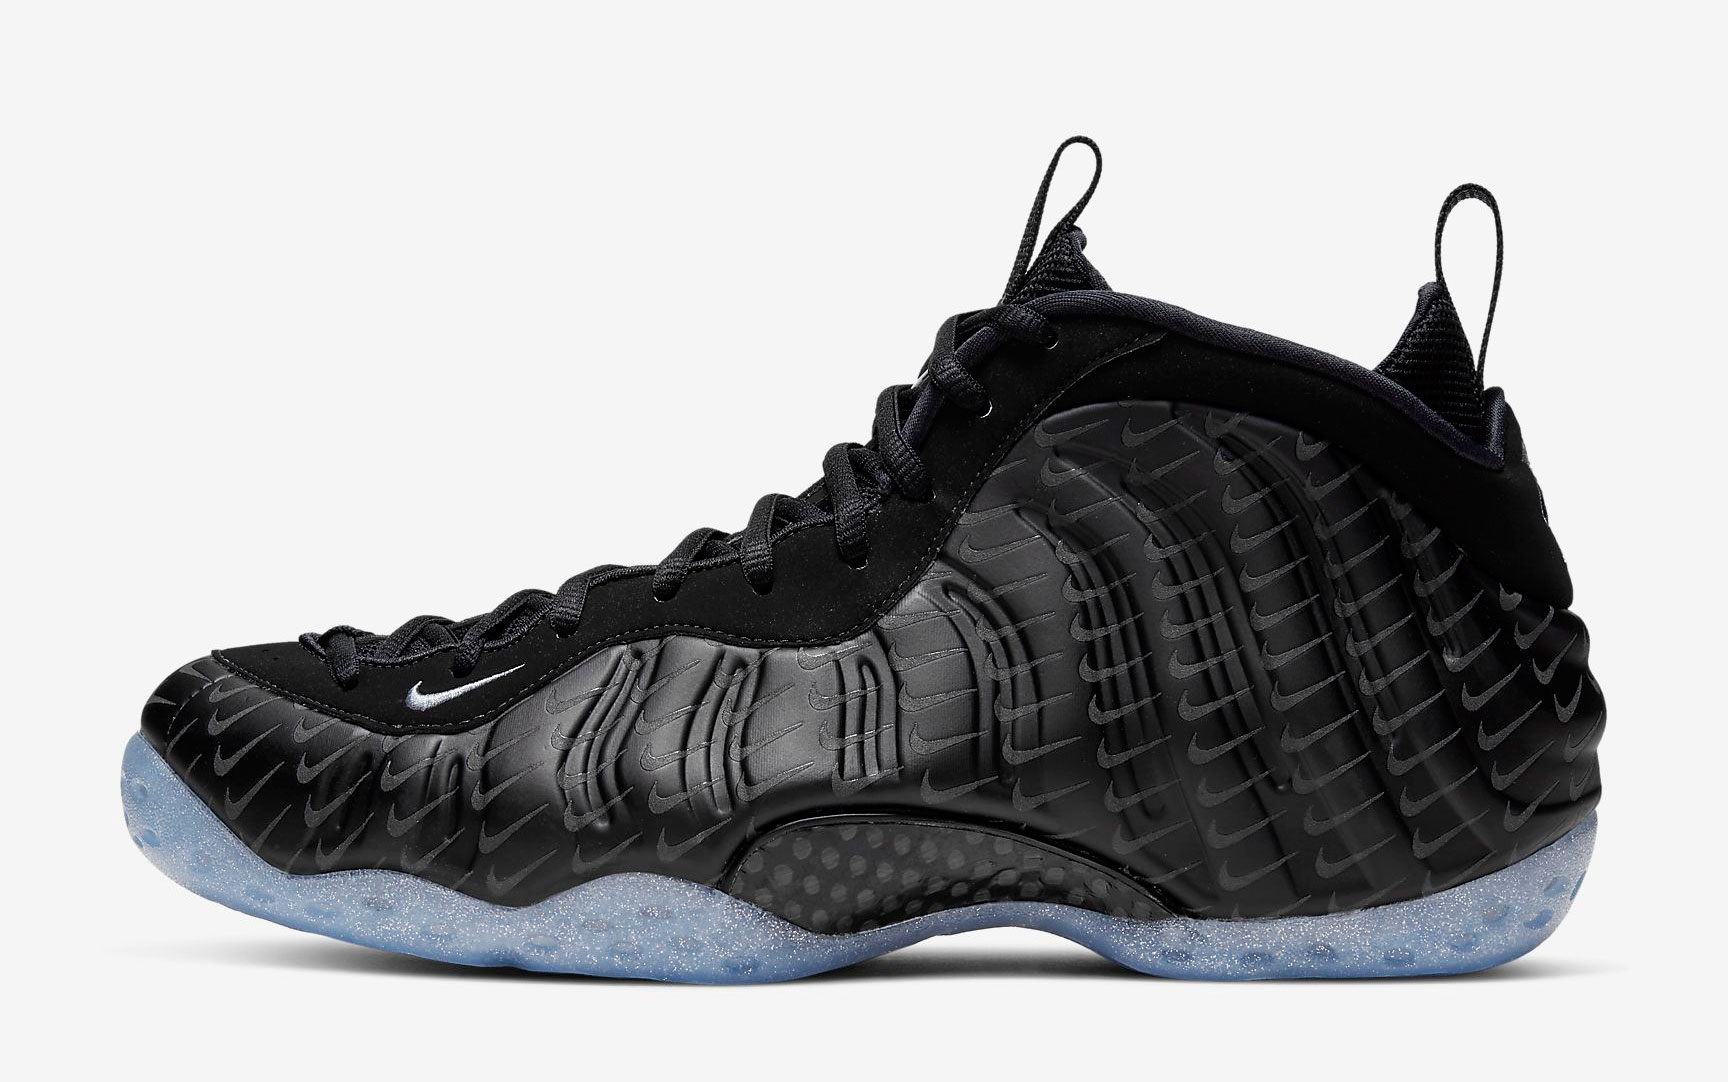 nike-air-foamposite-one-swoosh-release-date